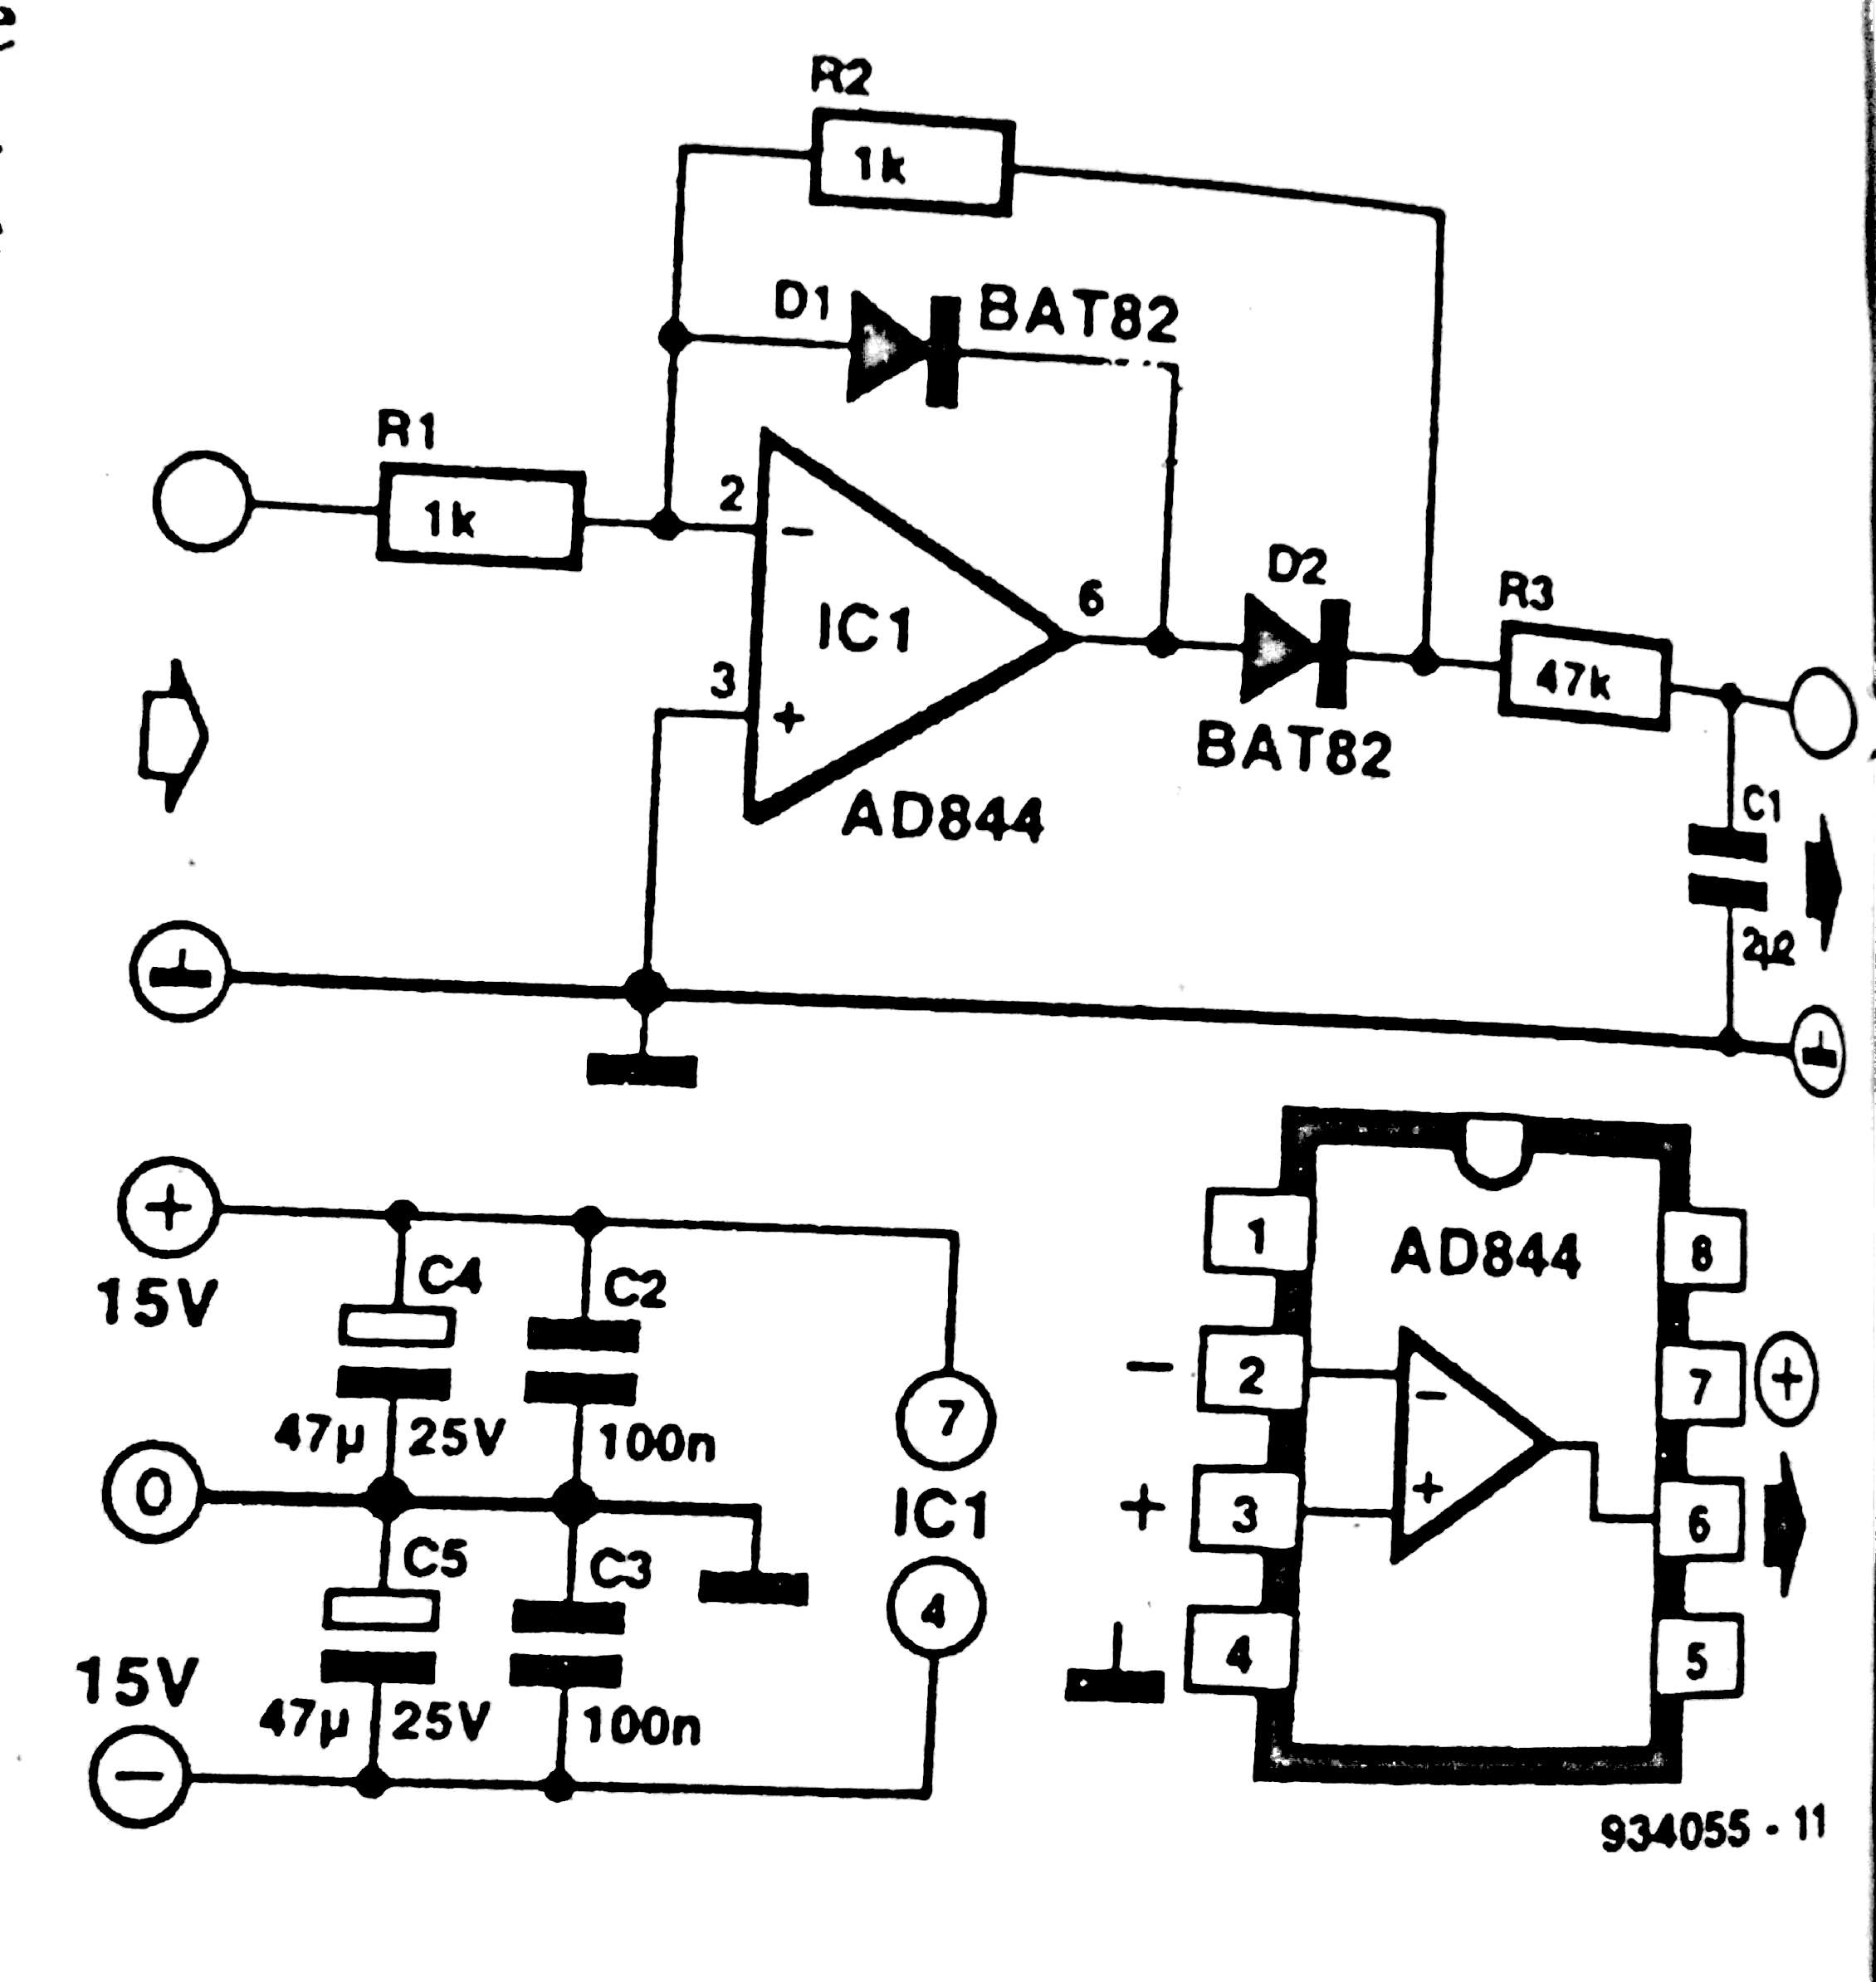 Home electrical wiring diagram maker images building electrical wiring diagram